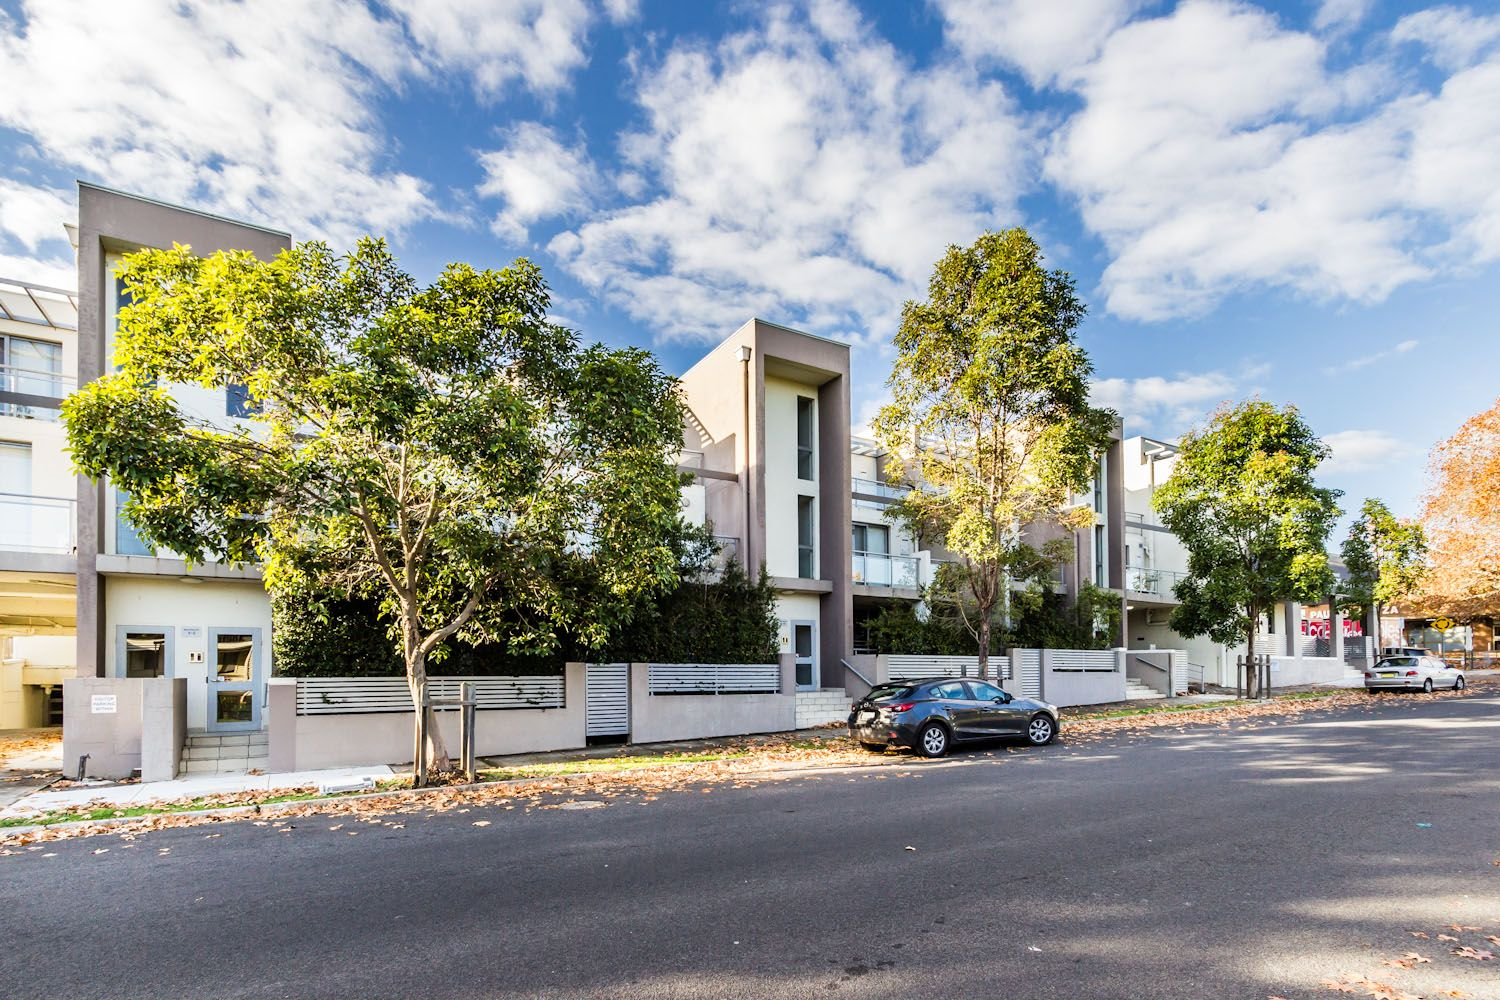 6/8-14 Bosworth Street, Richmond NSW 2753, Image 0